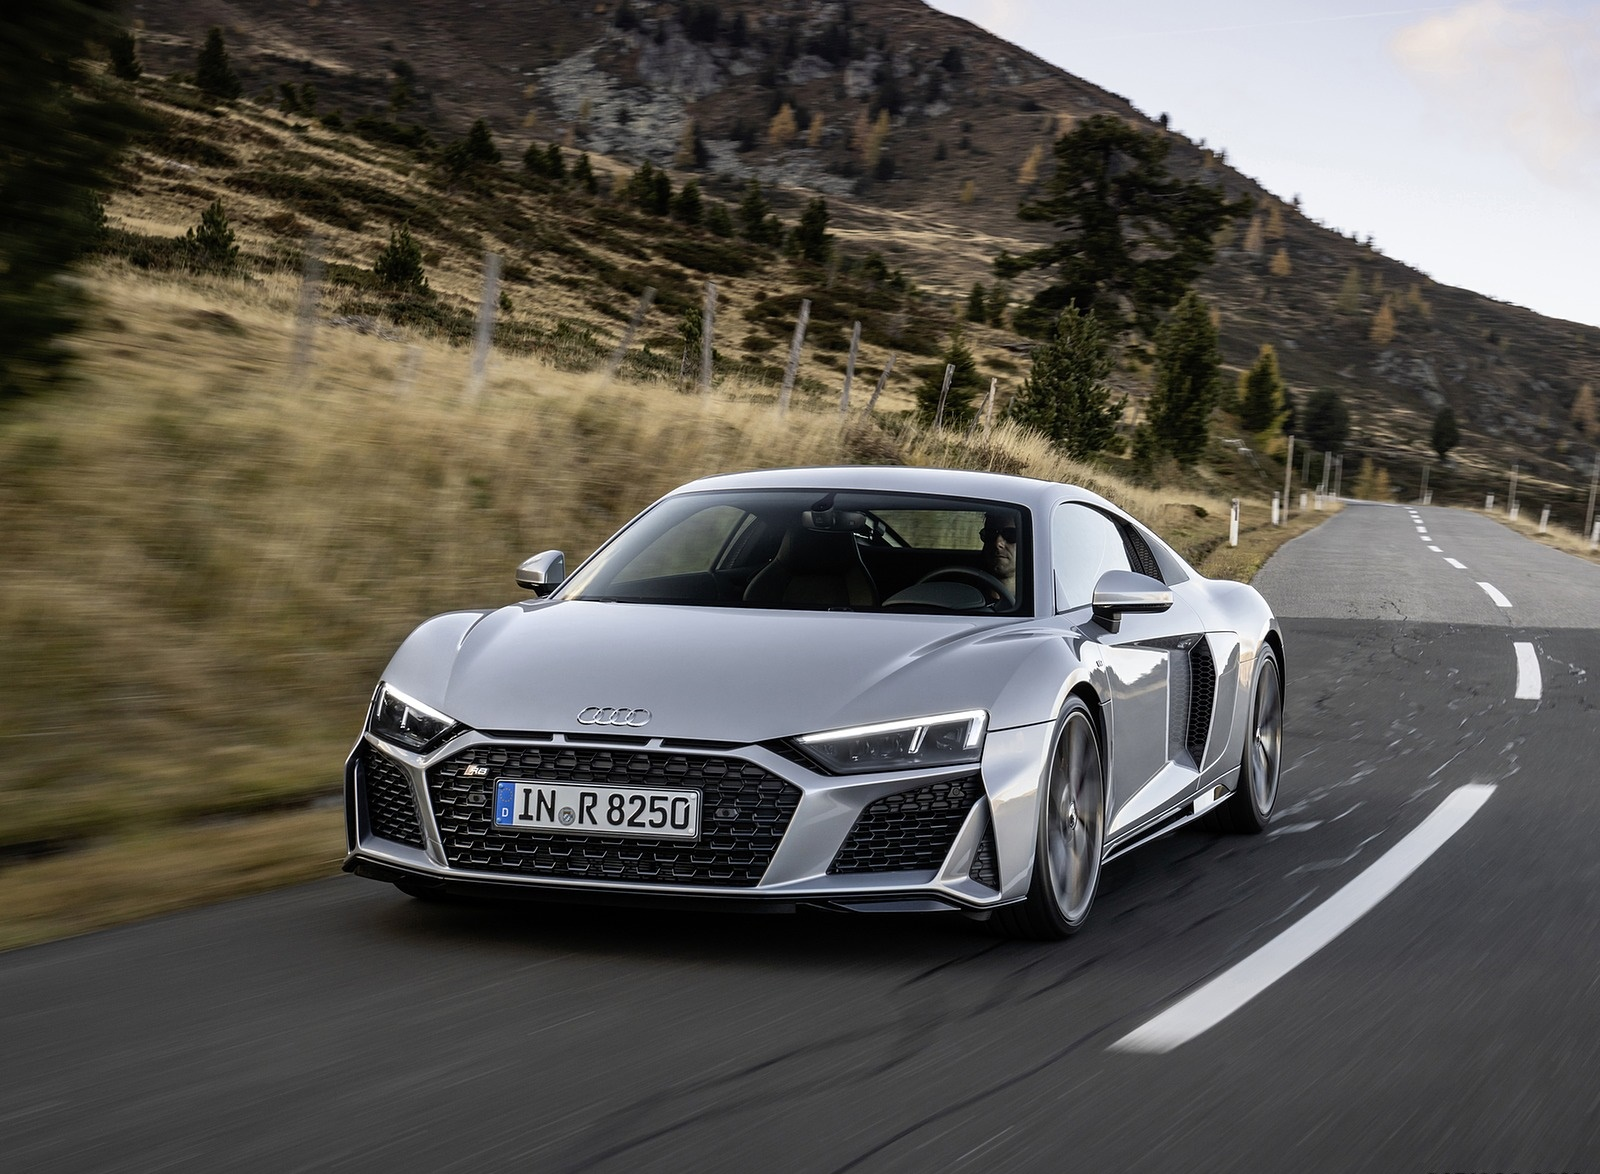 2020 Audi R8 V10 RWD Coupe (Color: Florett Silver) Front Three-Quarter Wallpapers (1)